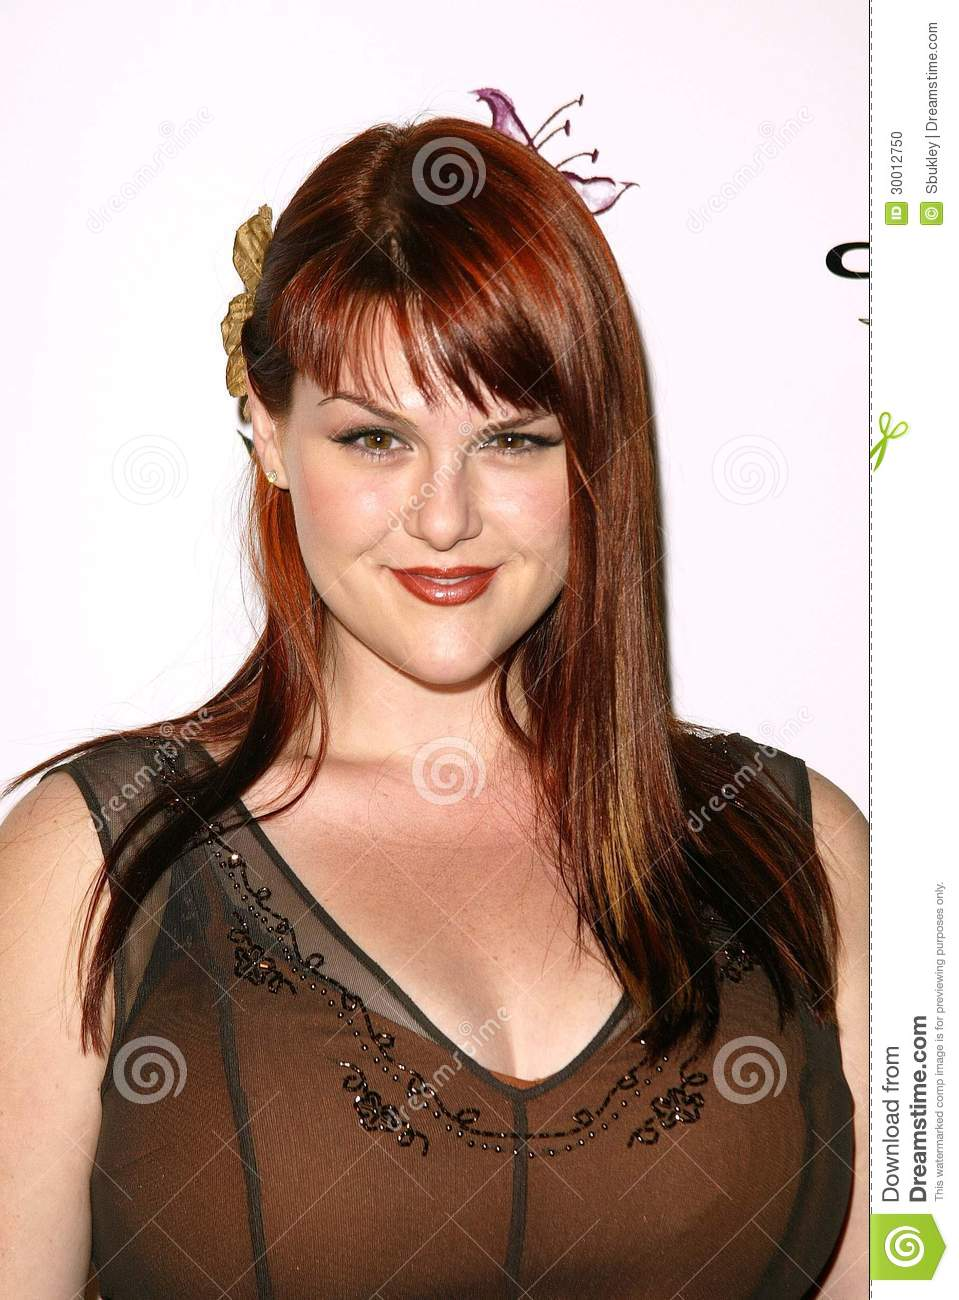 sara rue weight loss 2014sara rue instagram, sara rue 2017, sara rue 2016, sara rue weight loss, sara rue big bang theory, sara rue wiki, sara rue, sara rue imdb, sara rue weight loss 2014, sara rue 2015, sara rue 2014, sara rue tv shows, sara rue bones, sara rue dailymotion, sara rue husband